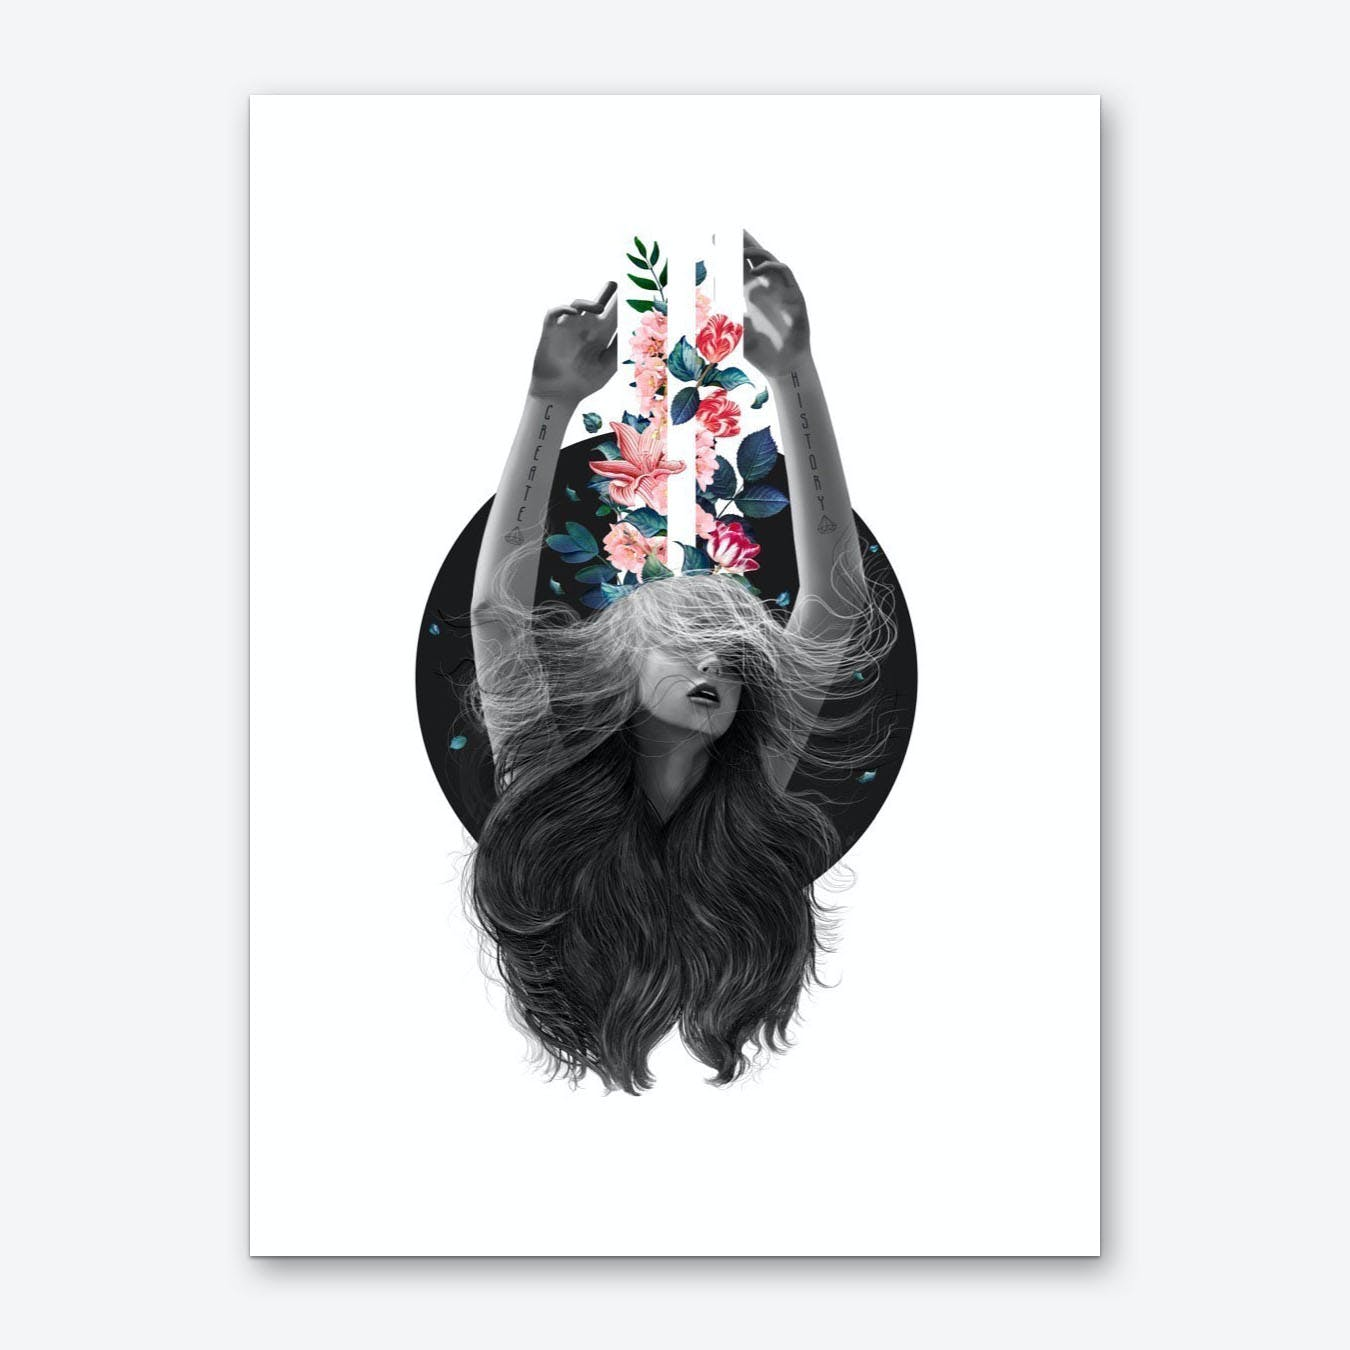 Blooming Imagination Art Print